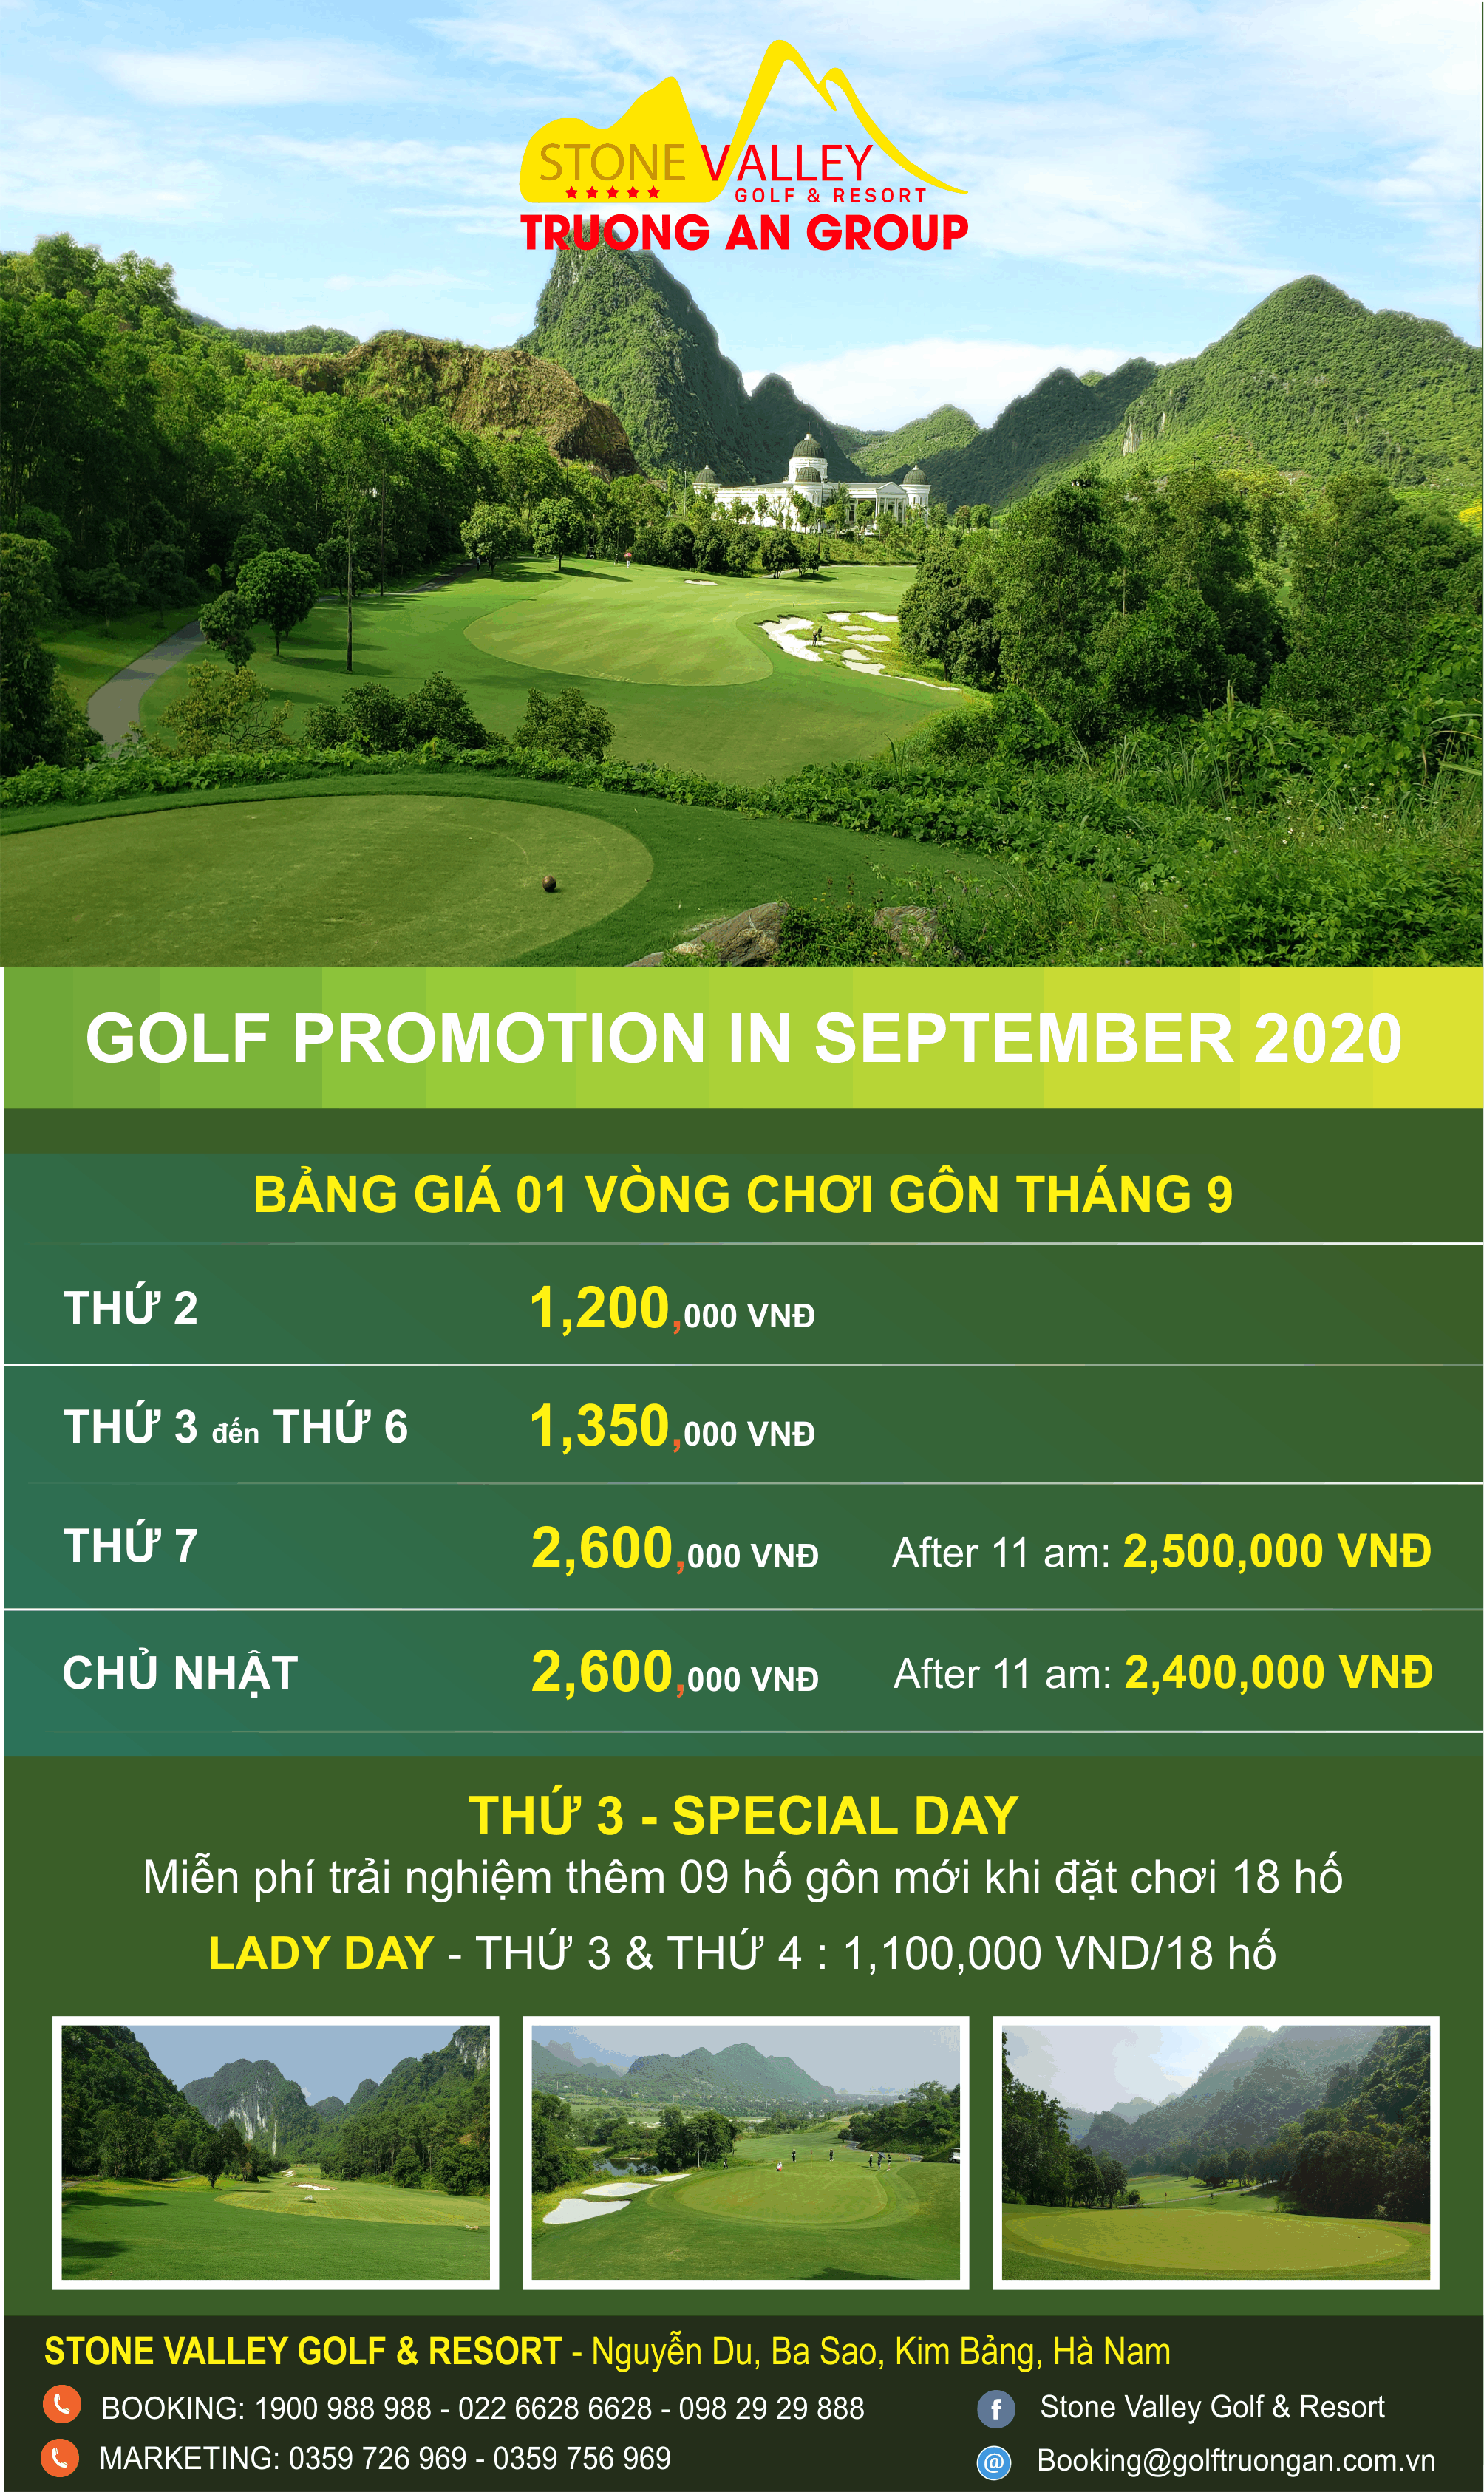 GOLF TARIFF MONTH 9/2020